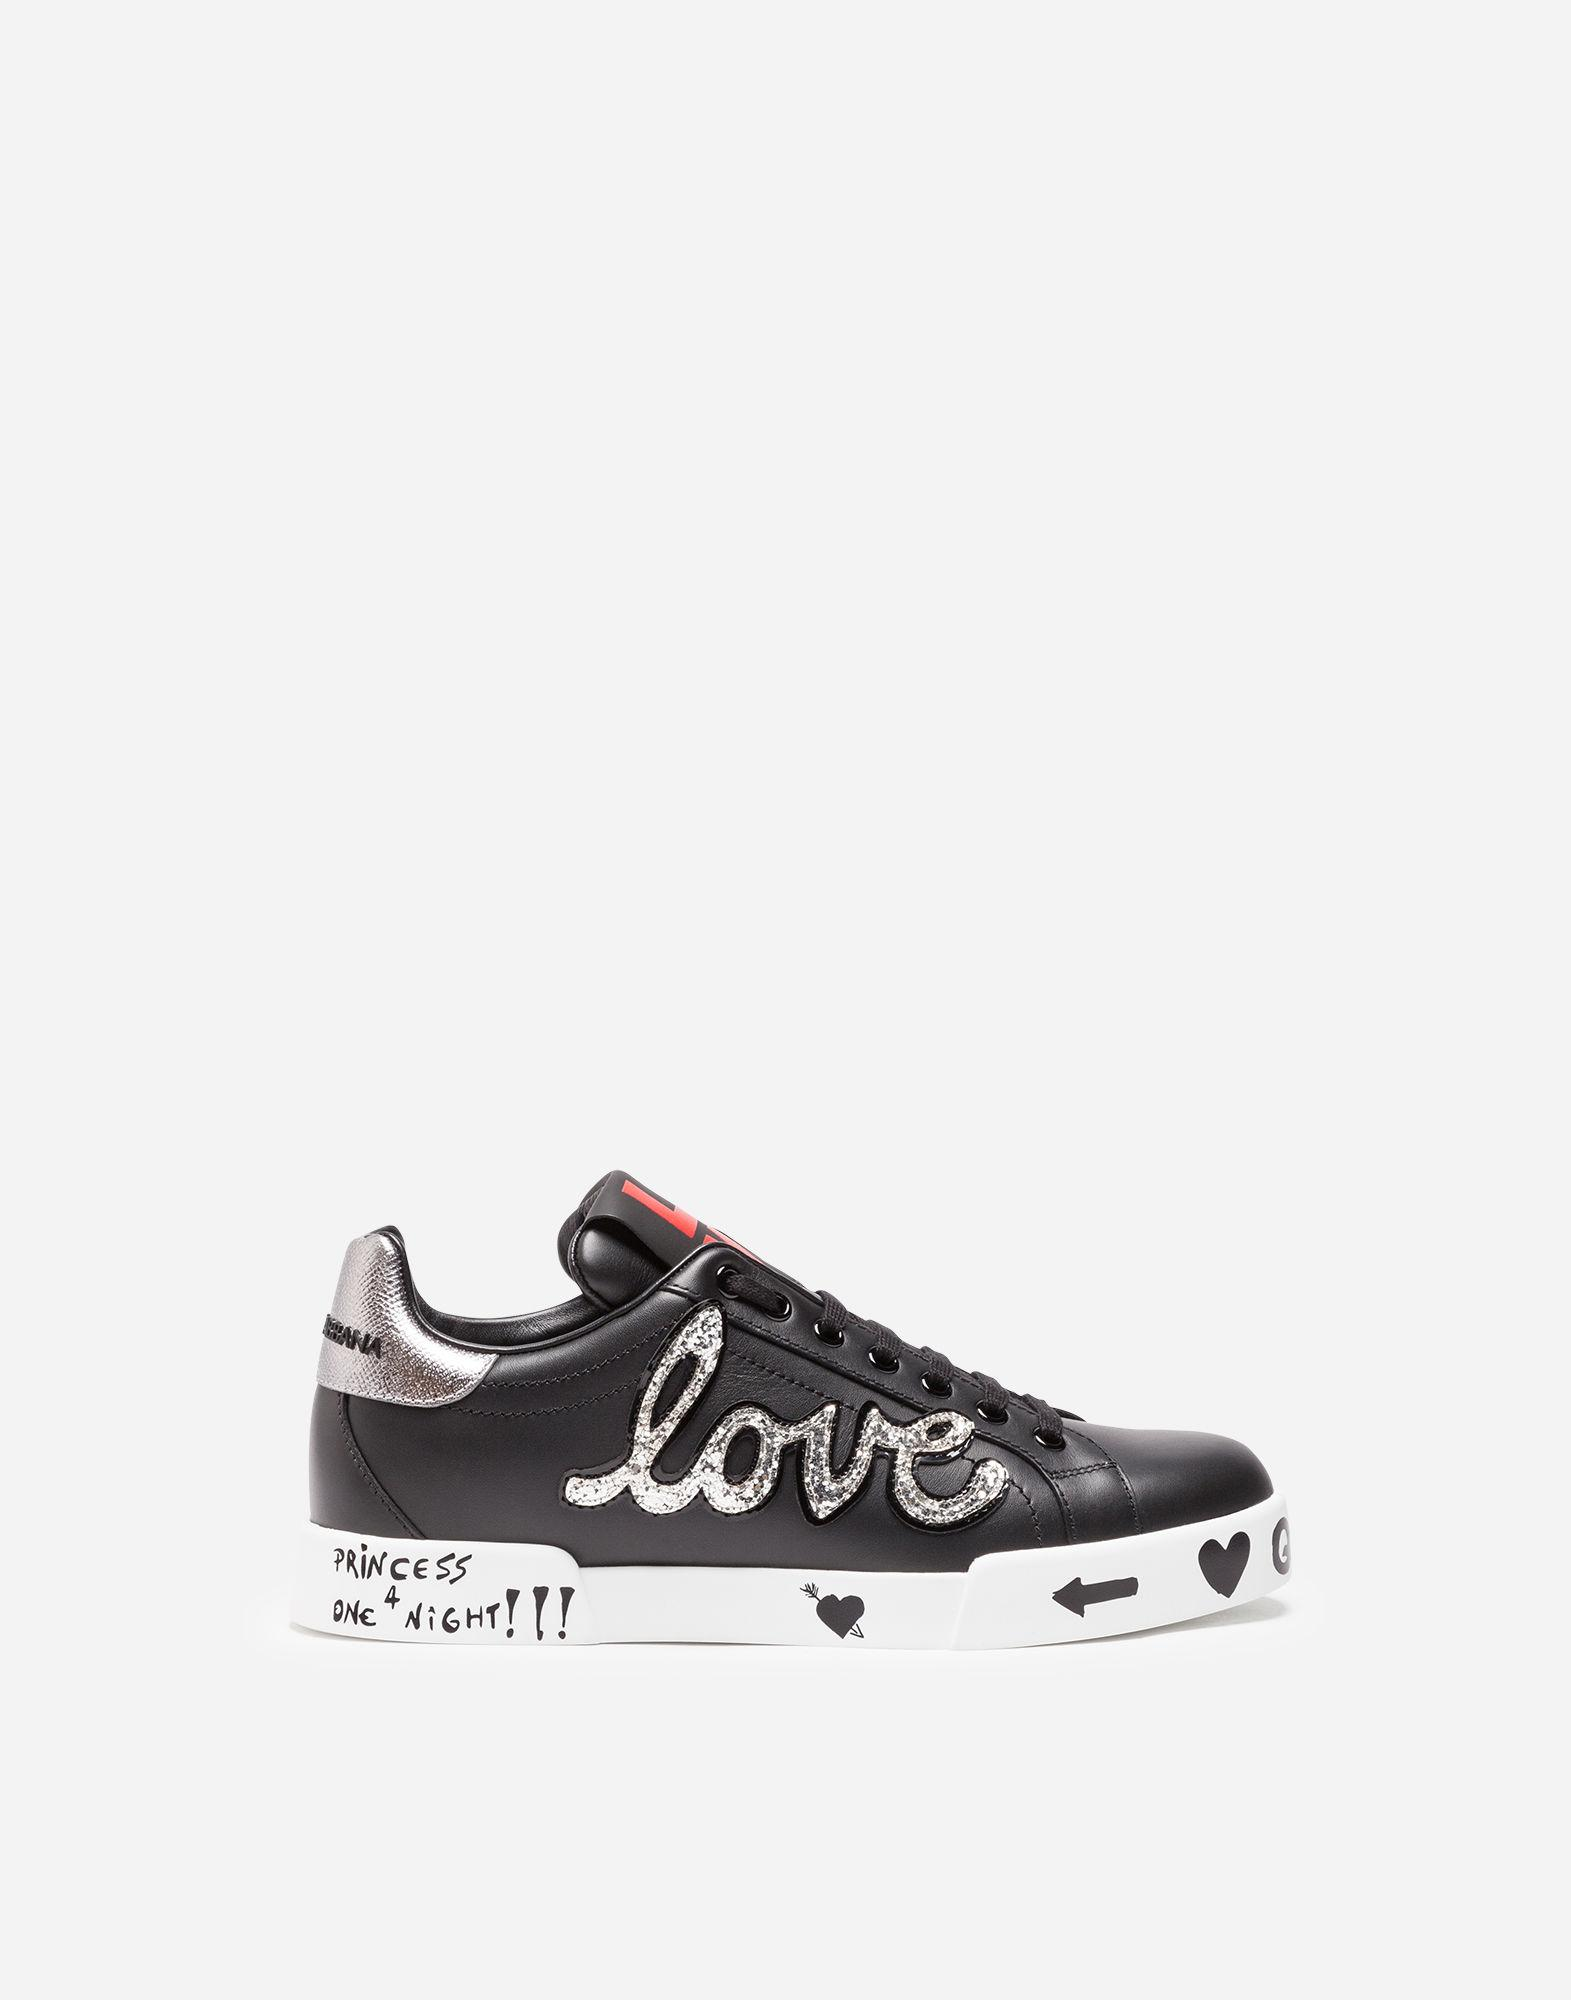 25e1282455a3 Lyst - Dolce   Gabbana Appliquéd Printed Leather Sneakers in Black ...